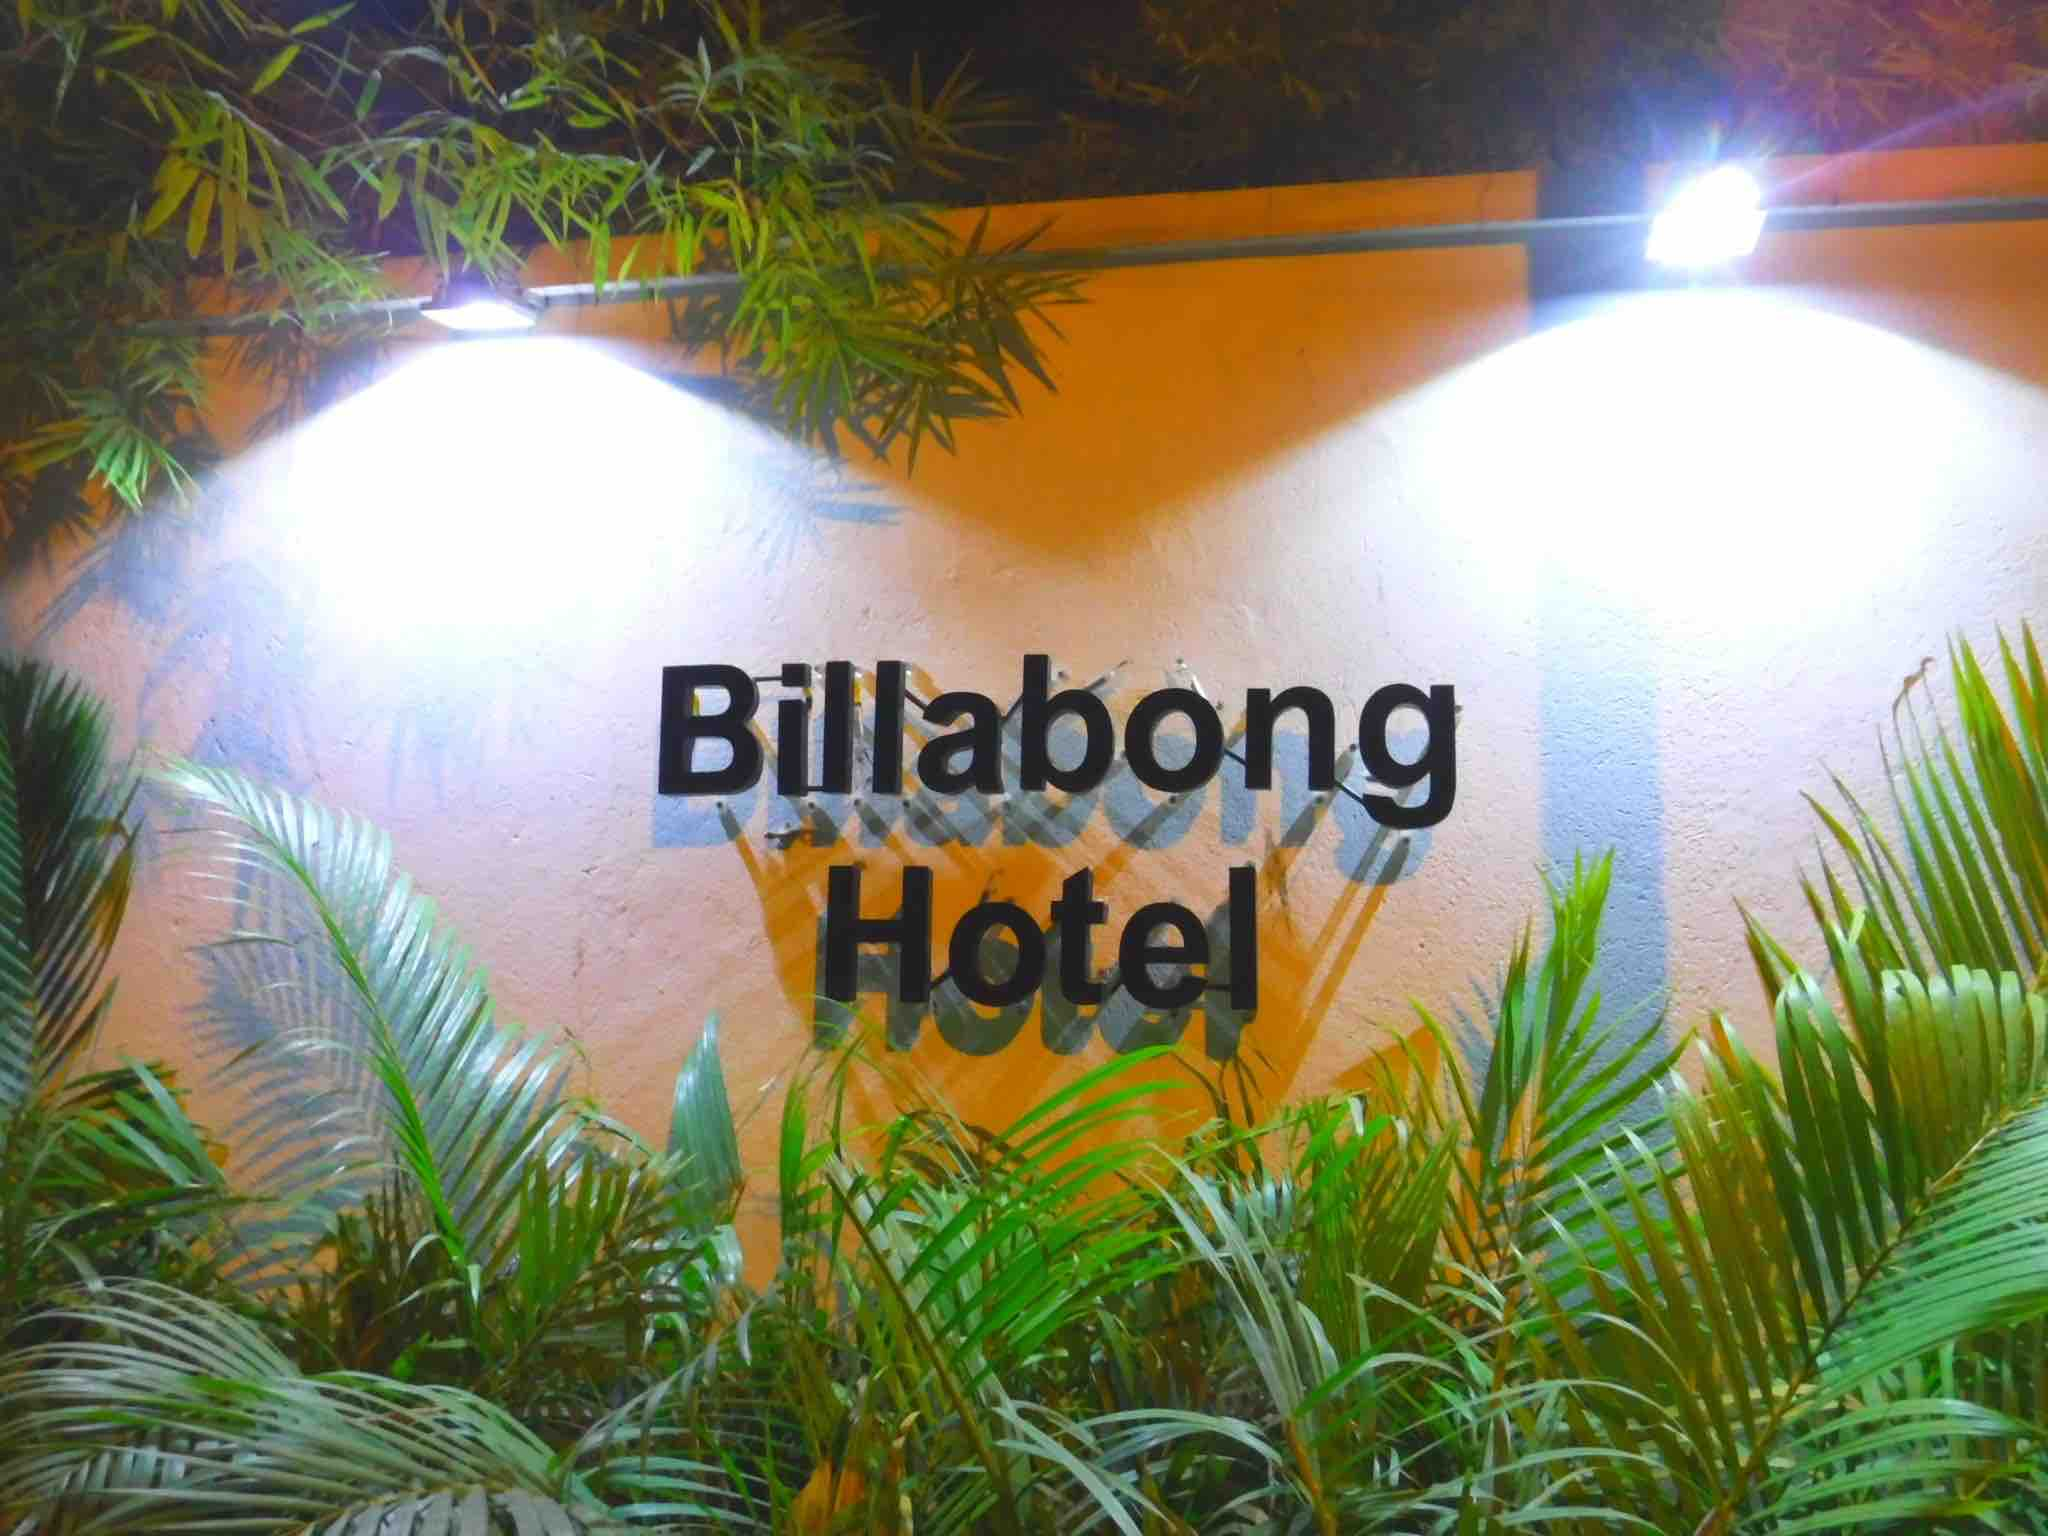 The Billabong Hotel - The Grounds